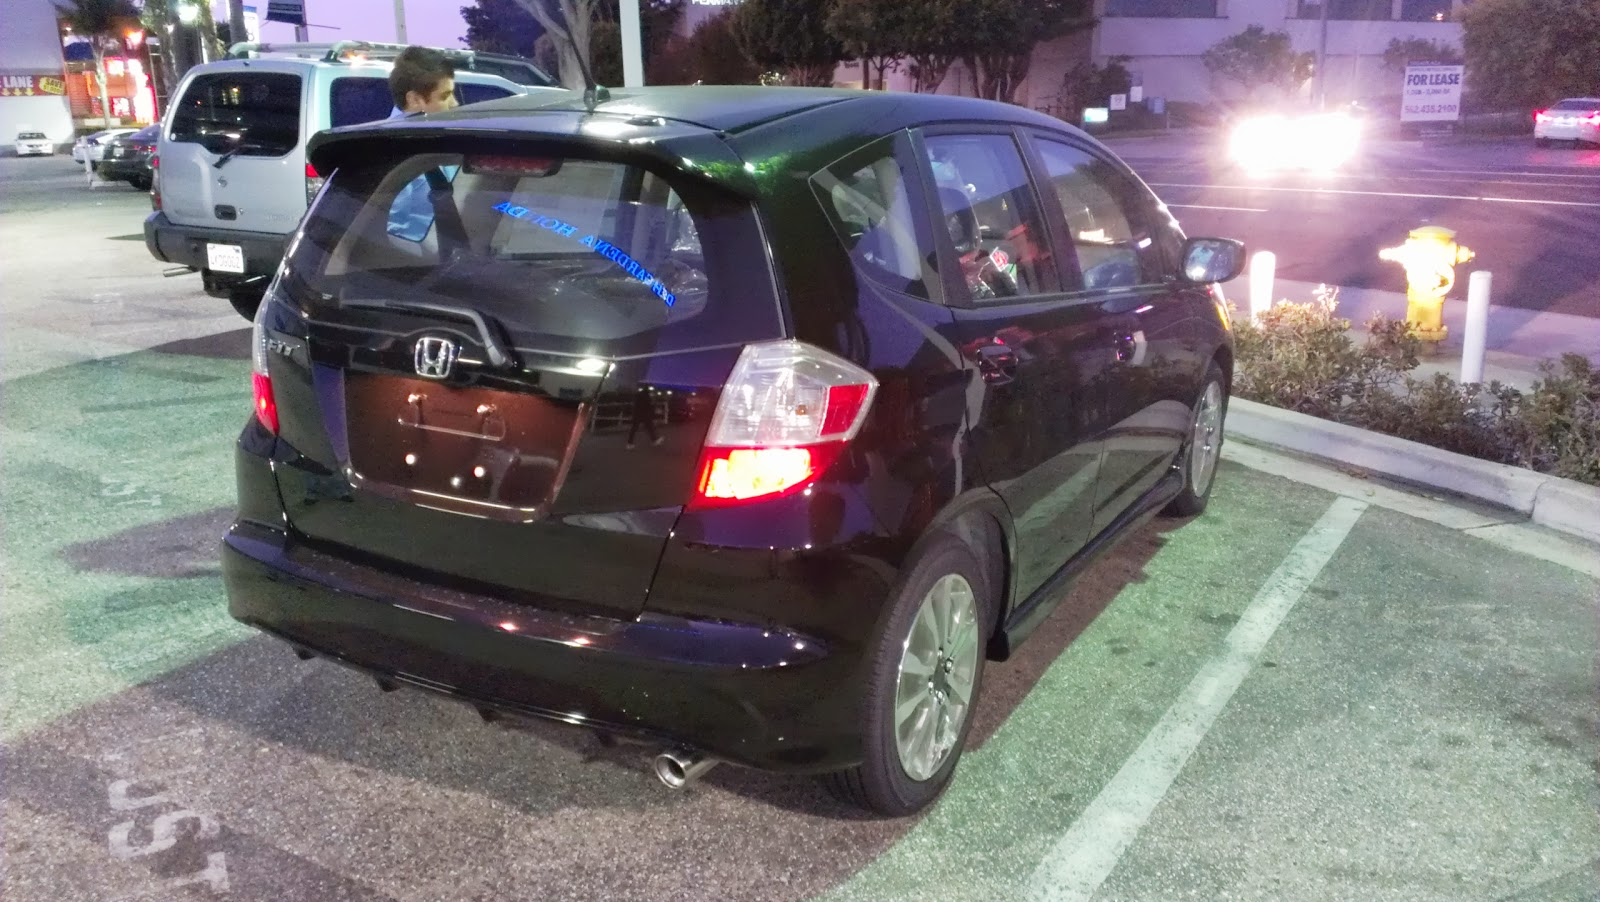 Already Being The Owner Of A 2011 Honda Fit Sport, I Did Not Expect The 2013  Model To Be That Different. I Like The Cosmetic Changes Of The Newer Model,  ...